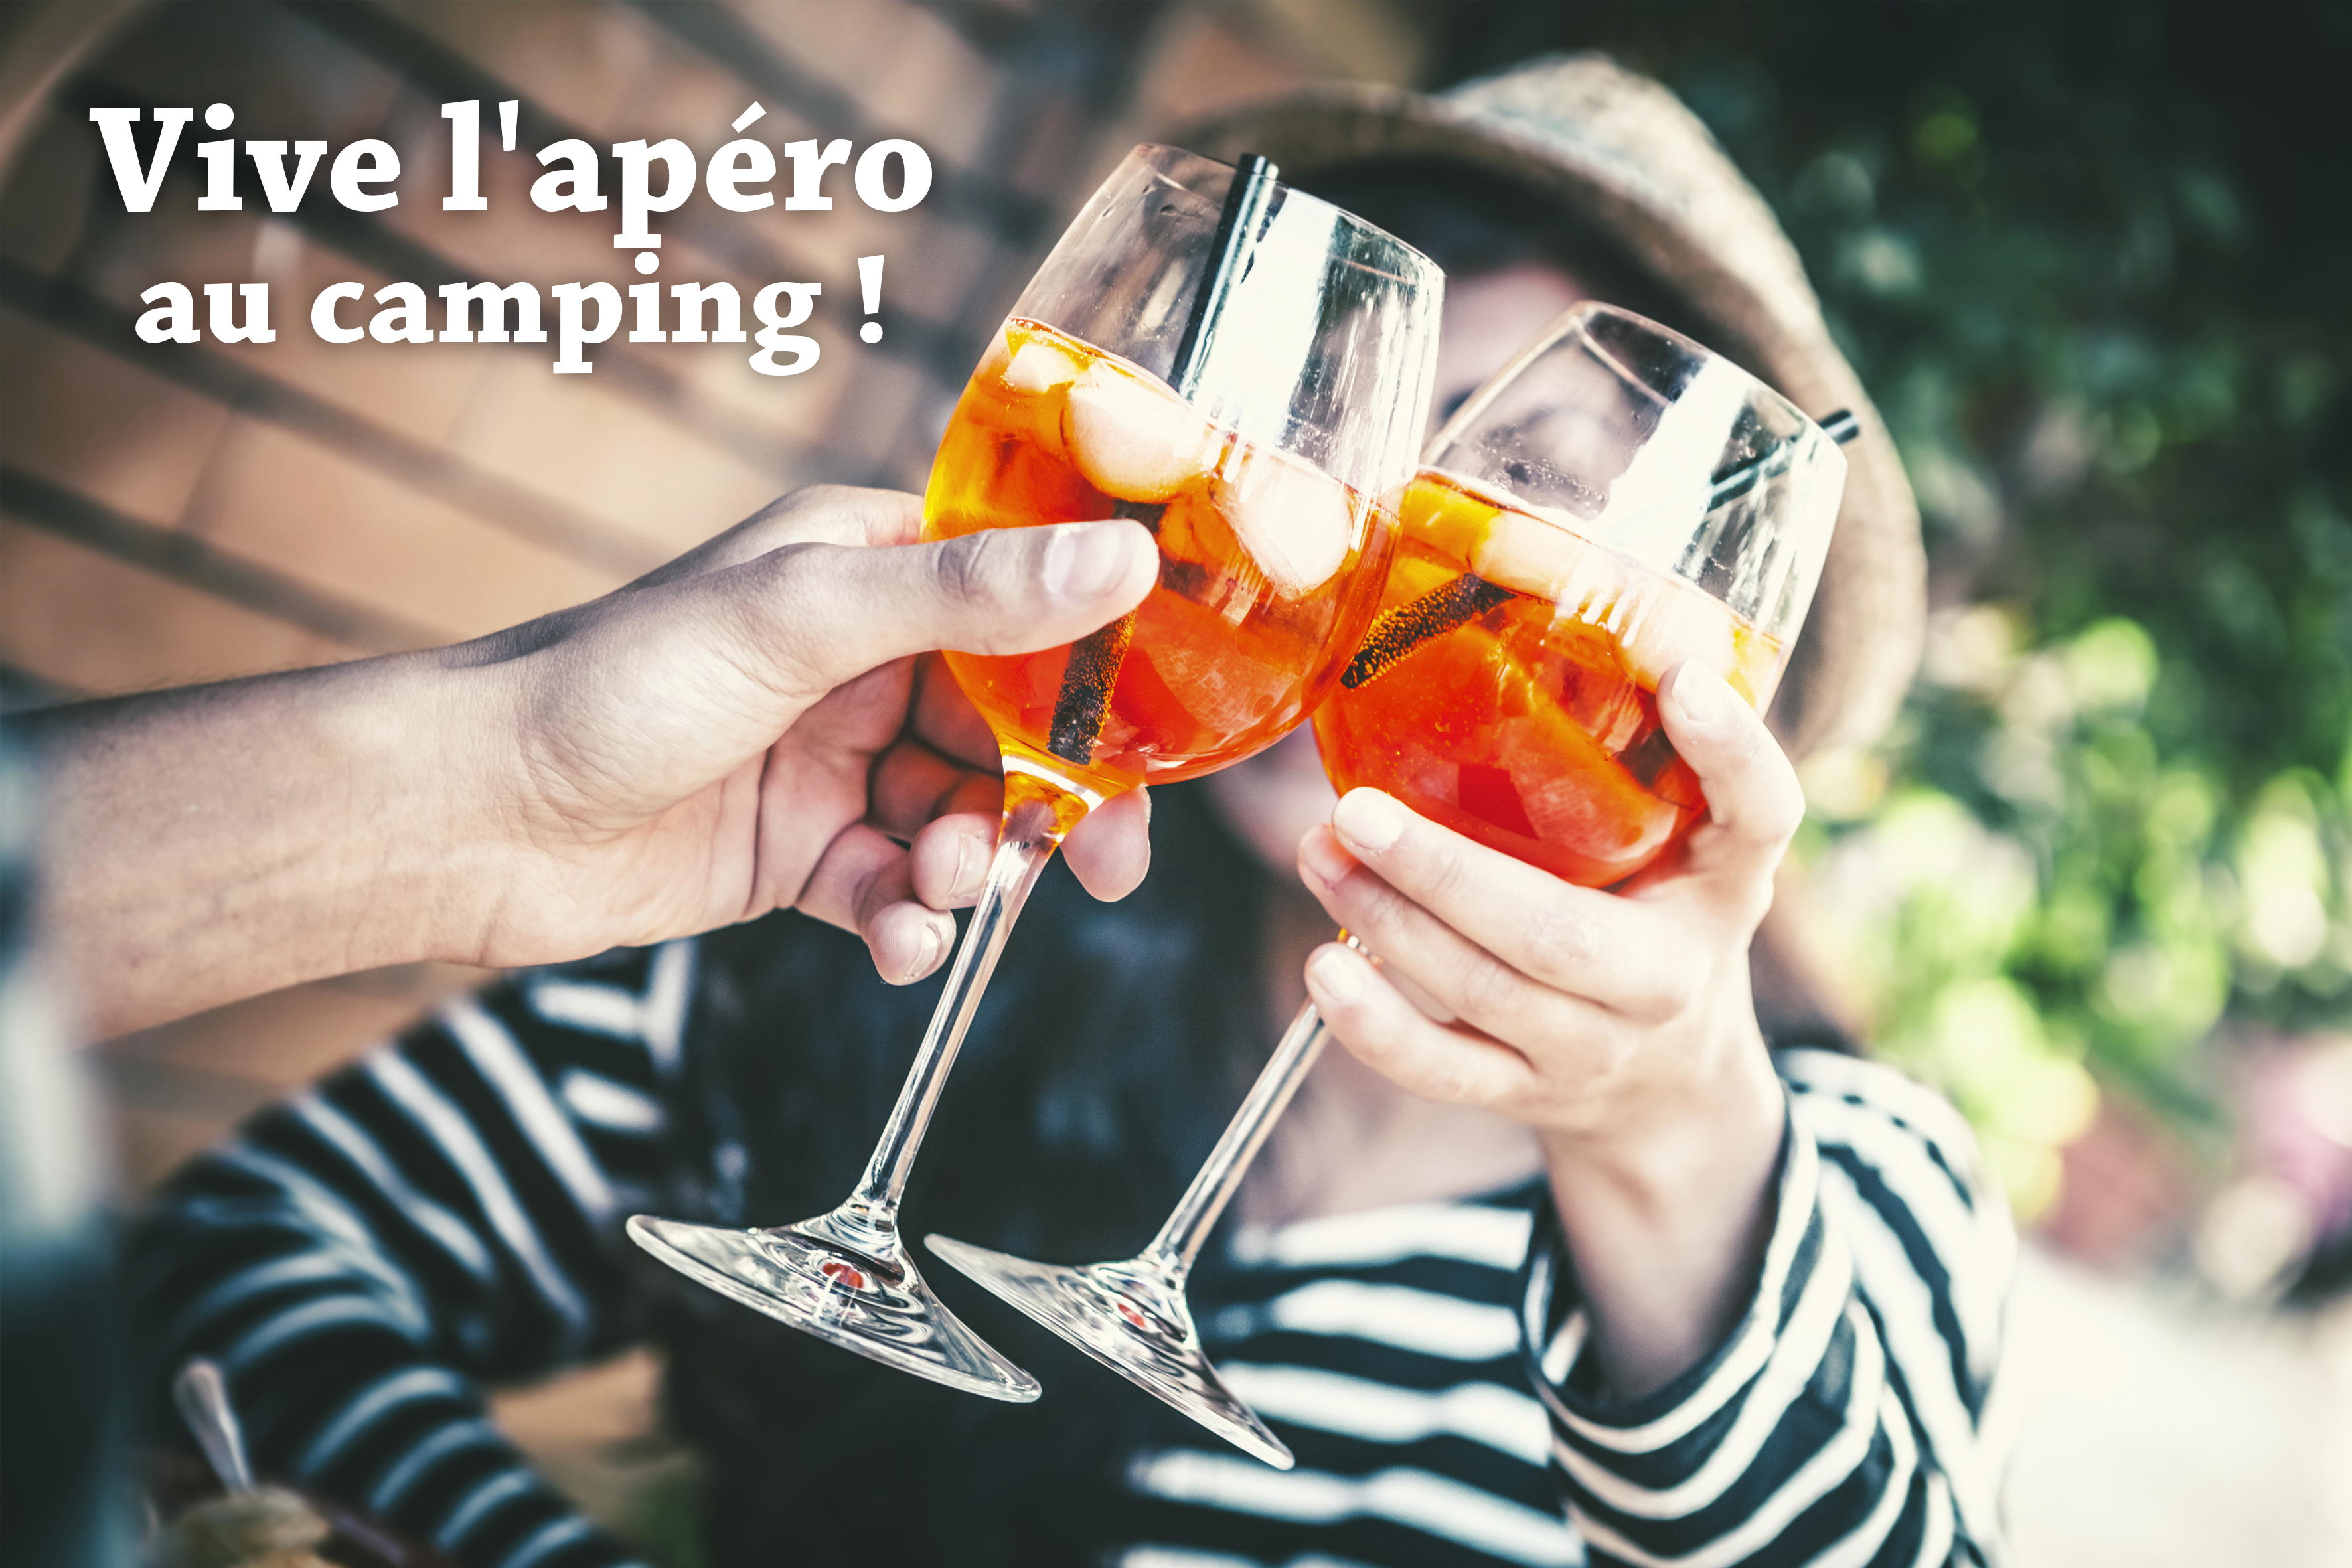 Camping convivial, camping pas cher, camping bord de mer, camping mer et soleil, camping familial, location mobil home